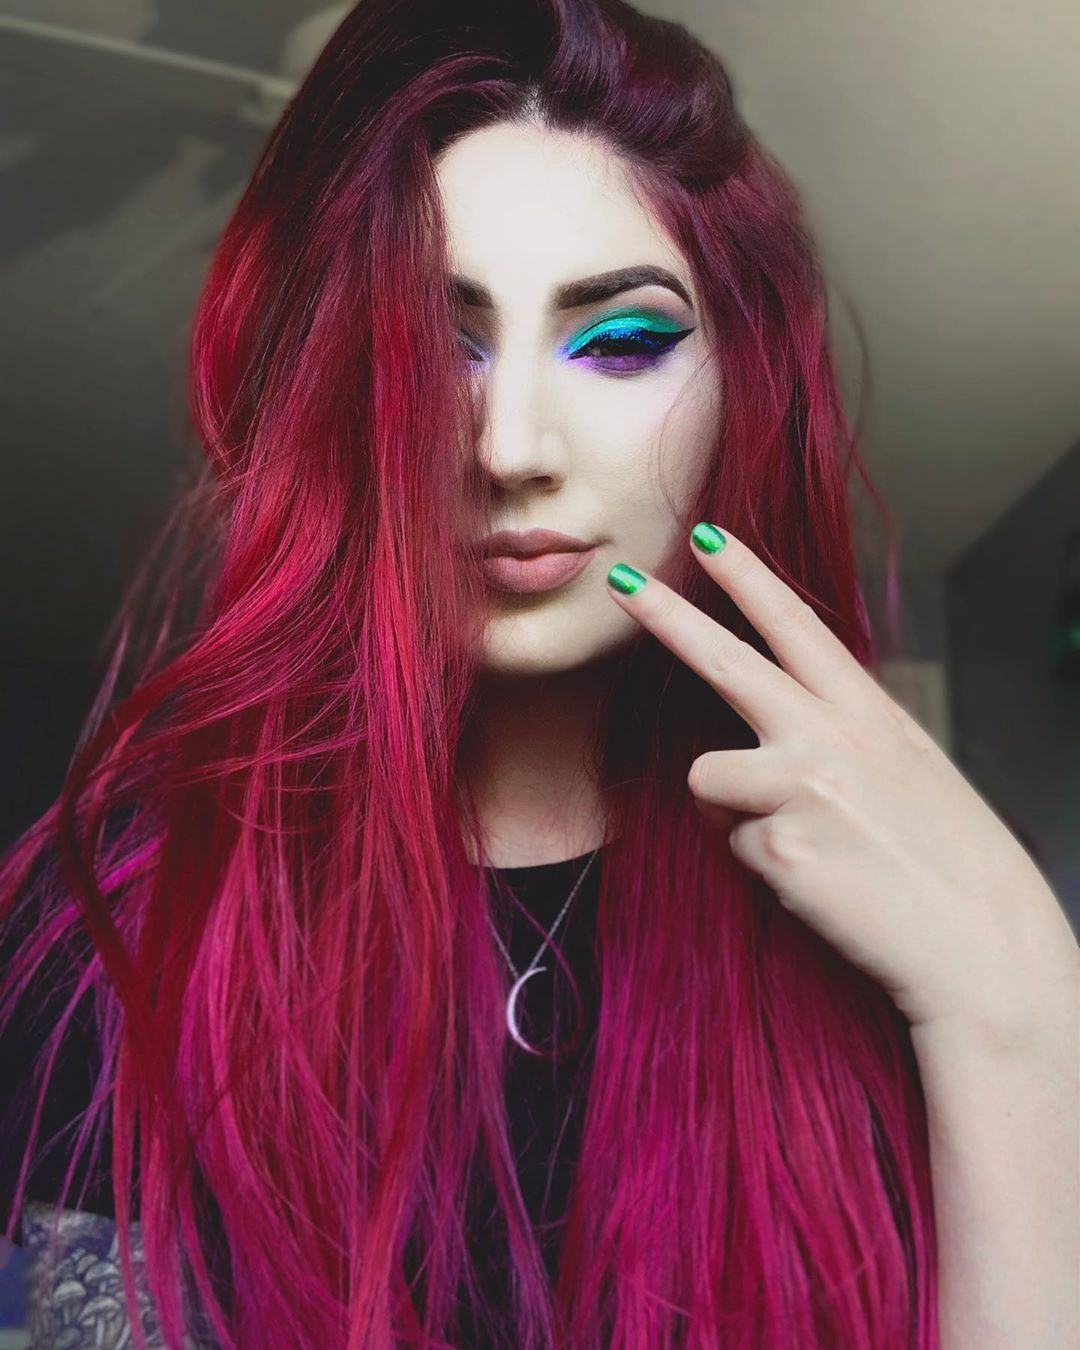 Arctic Fox Hair Color Kayladaniellea Really Feeling This Arcticfoxhaircolor Mash Up Of Shades Virgin Pink A Fox Hair Dye Hair Inspiration Color Hot Pink Hair